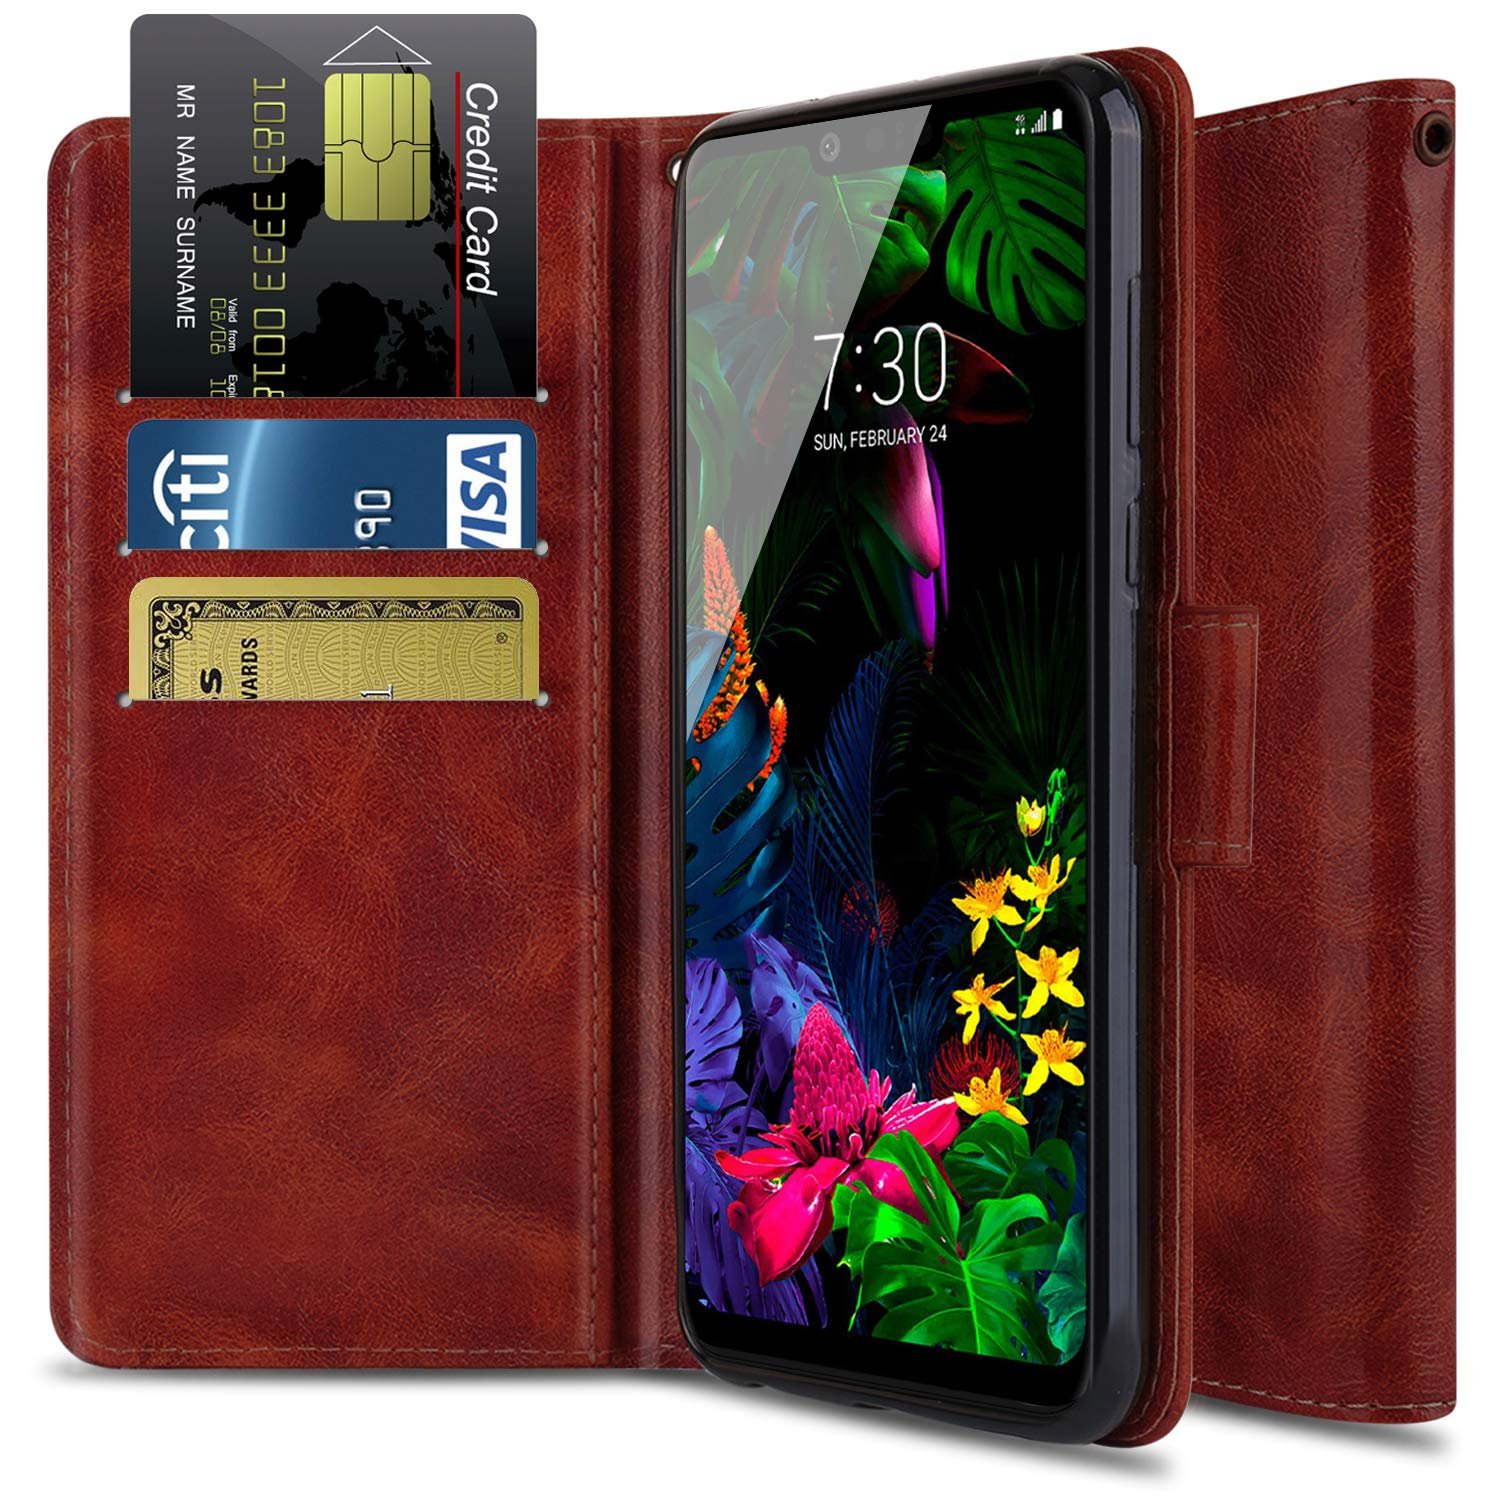 ba96e11cb5ae Wallet Case for LG G8 ThinQ, LG G8 Case OTOONE [Flip Folio] Heavy Duty  Shock Proof PU Leather Wallet Card Slot Protective Phone Cover with  Kickstand ...